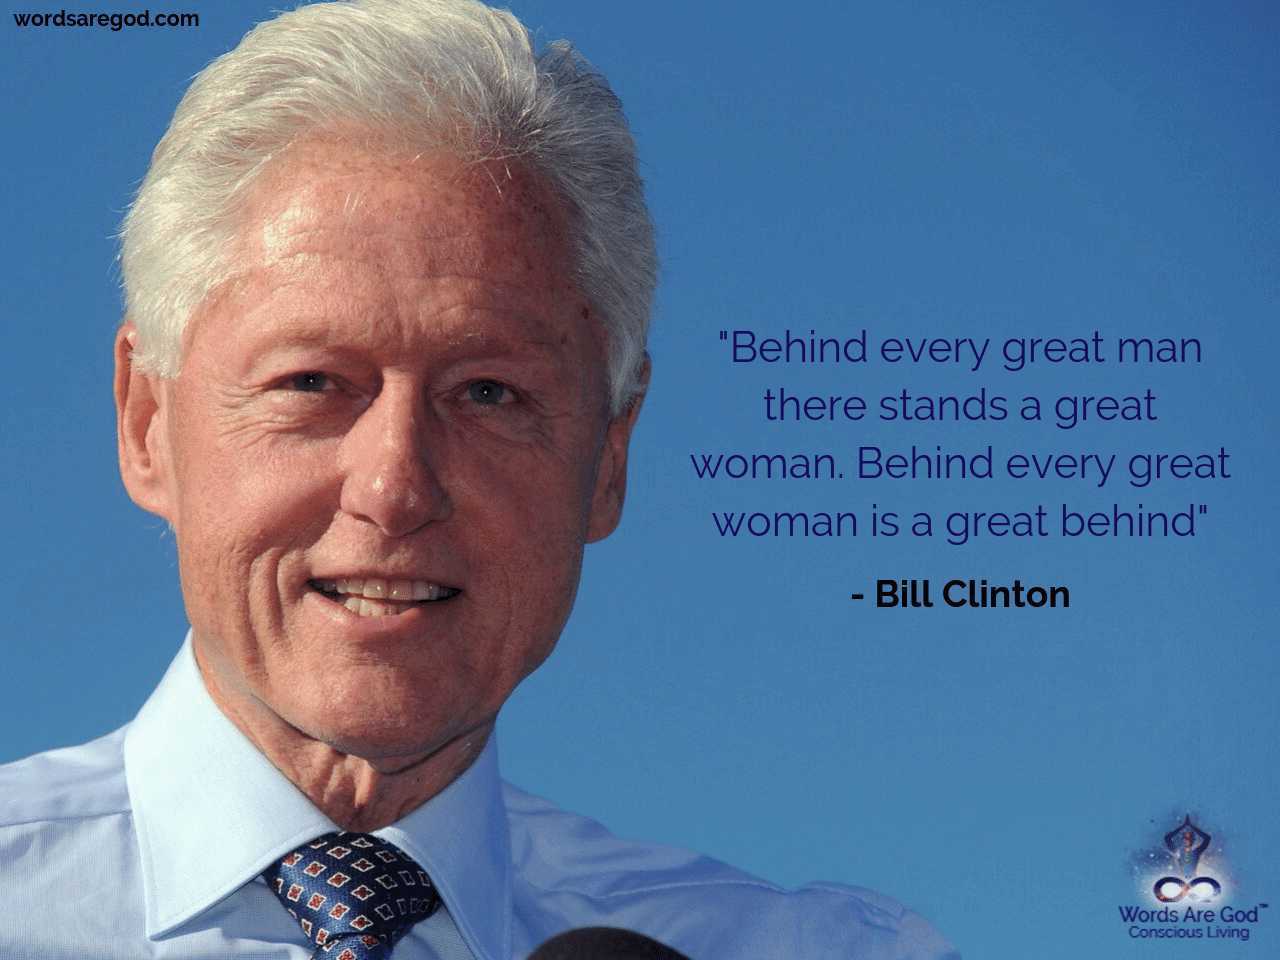 Bill Clinton Inspirational quote